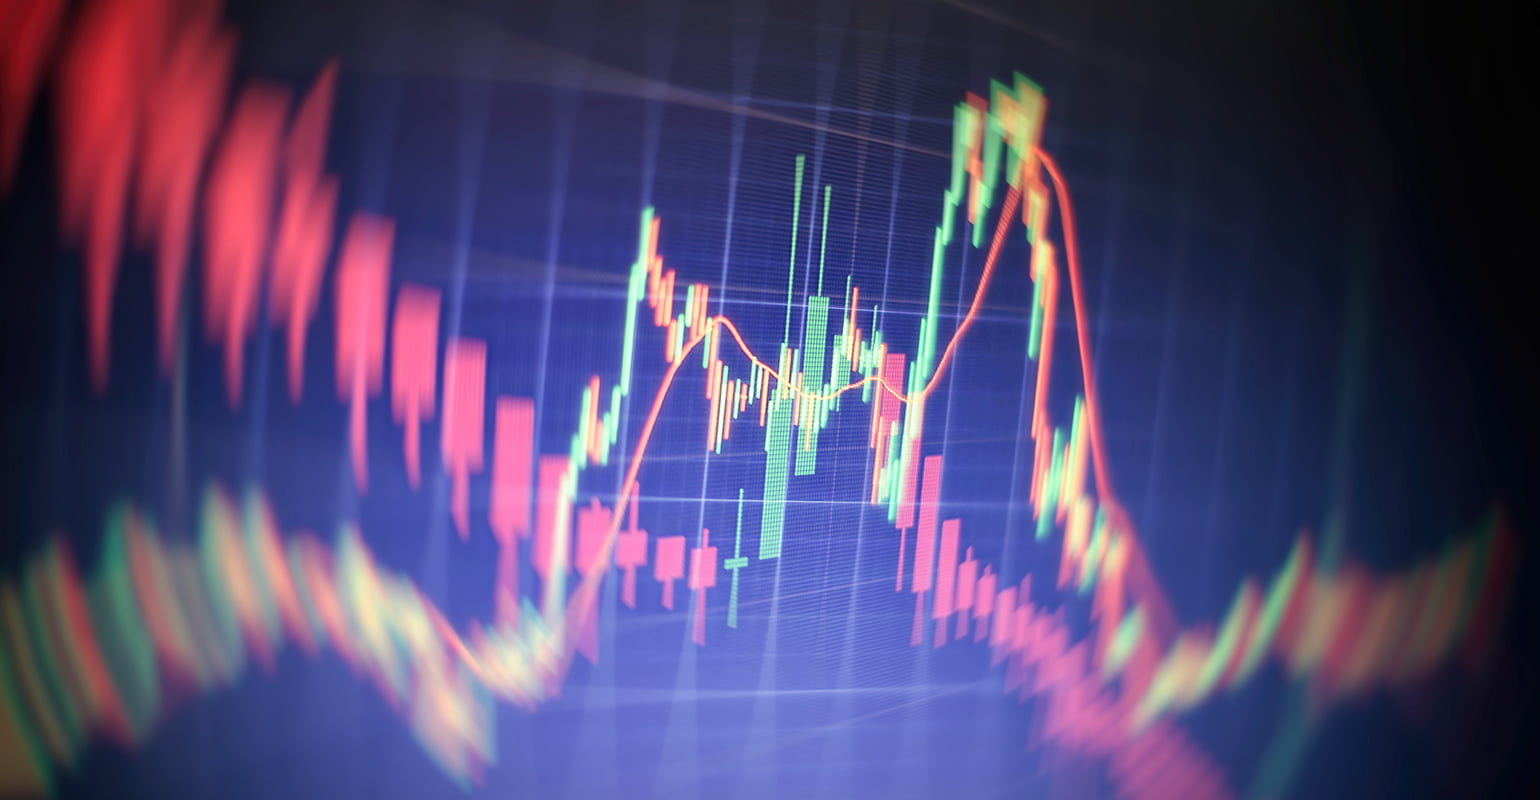 After a Roller Coaster Year, What's Next for Small Caps?